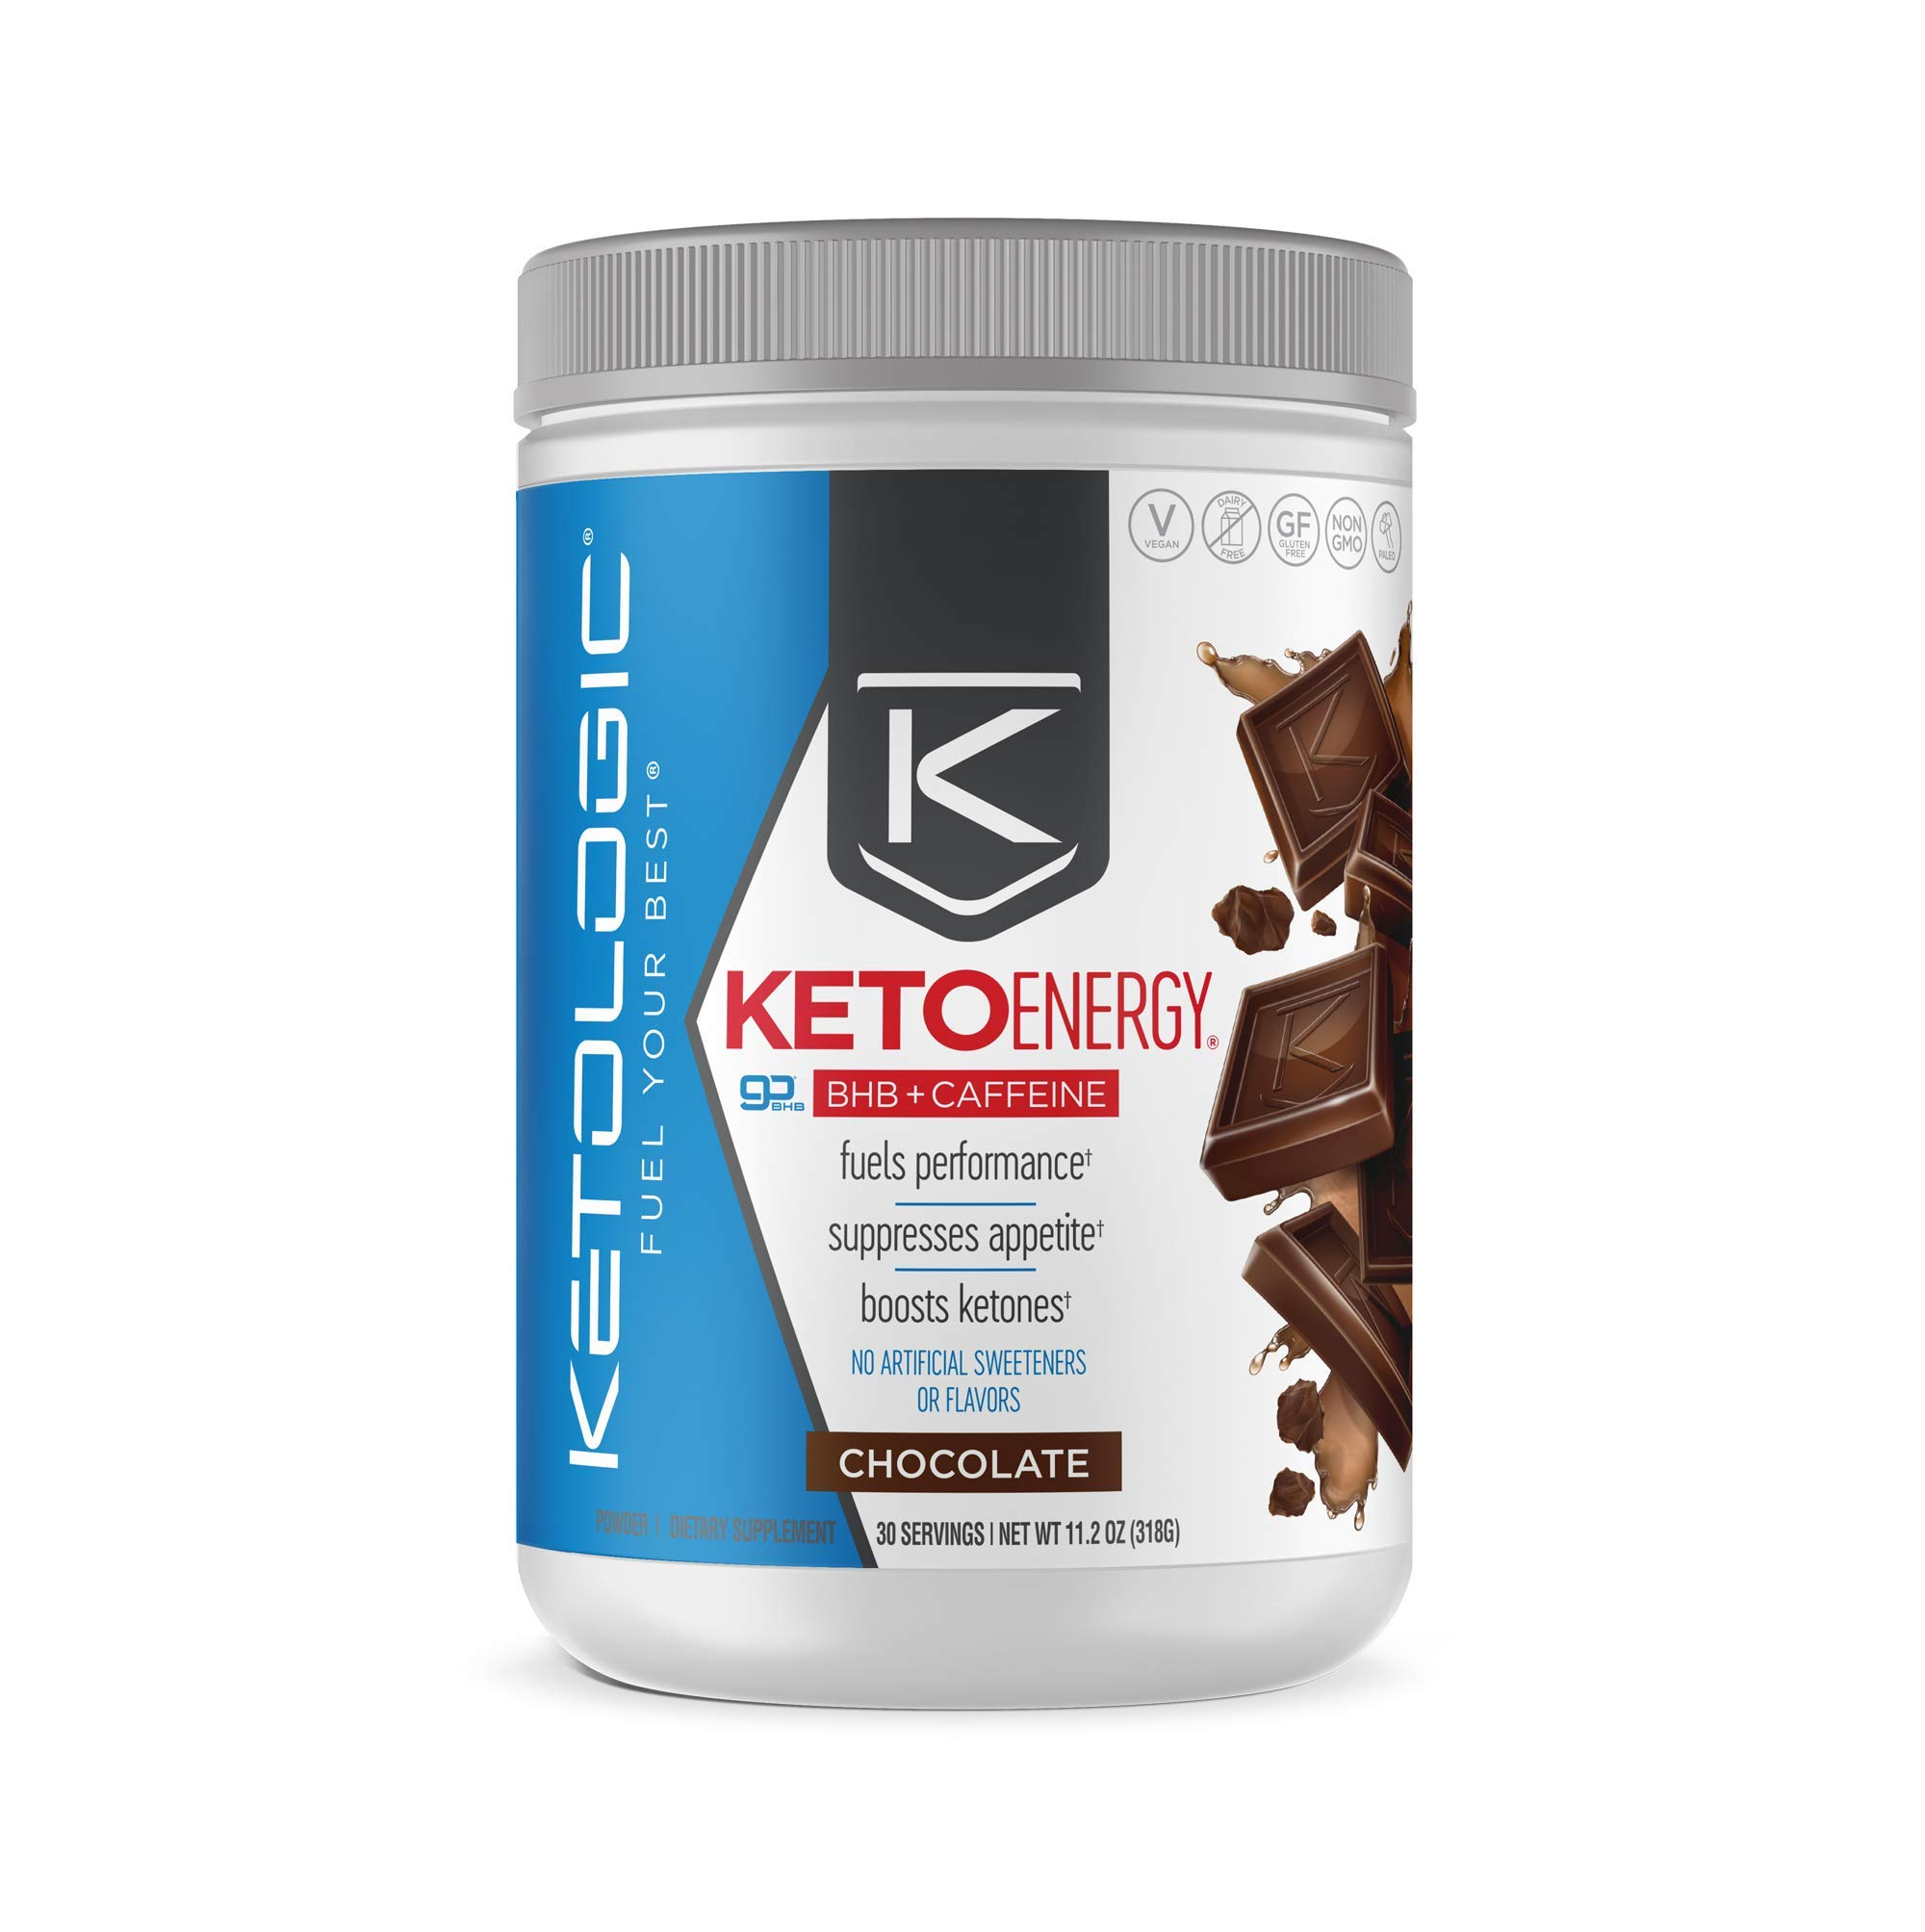 KetoLogic Ketoenergy Bhb with Caffeine, Chocolate | Beta-Hydrobutyrate Salts Ketone Powder Supplement | Supports Low-Carb, Keto Diet & Pre-Workout | 30 Servings by Ketologic